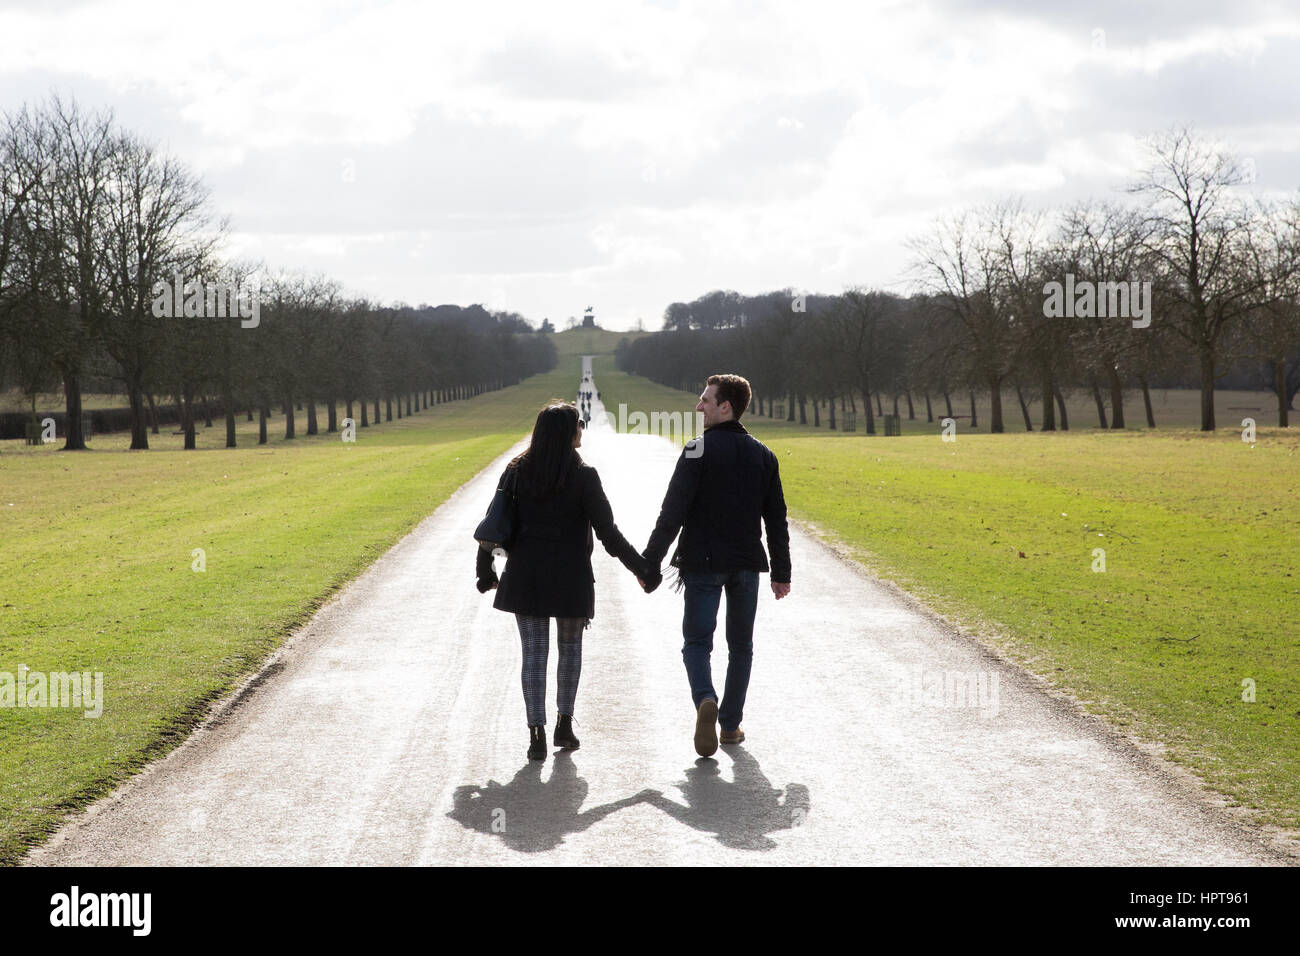 Windsor, UK. 24th February, 2017. A man and a woman walk hand in hand in fine weather on the Long Walk in WindsorStock Photo